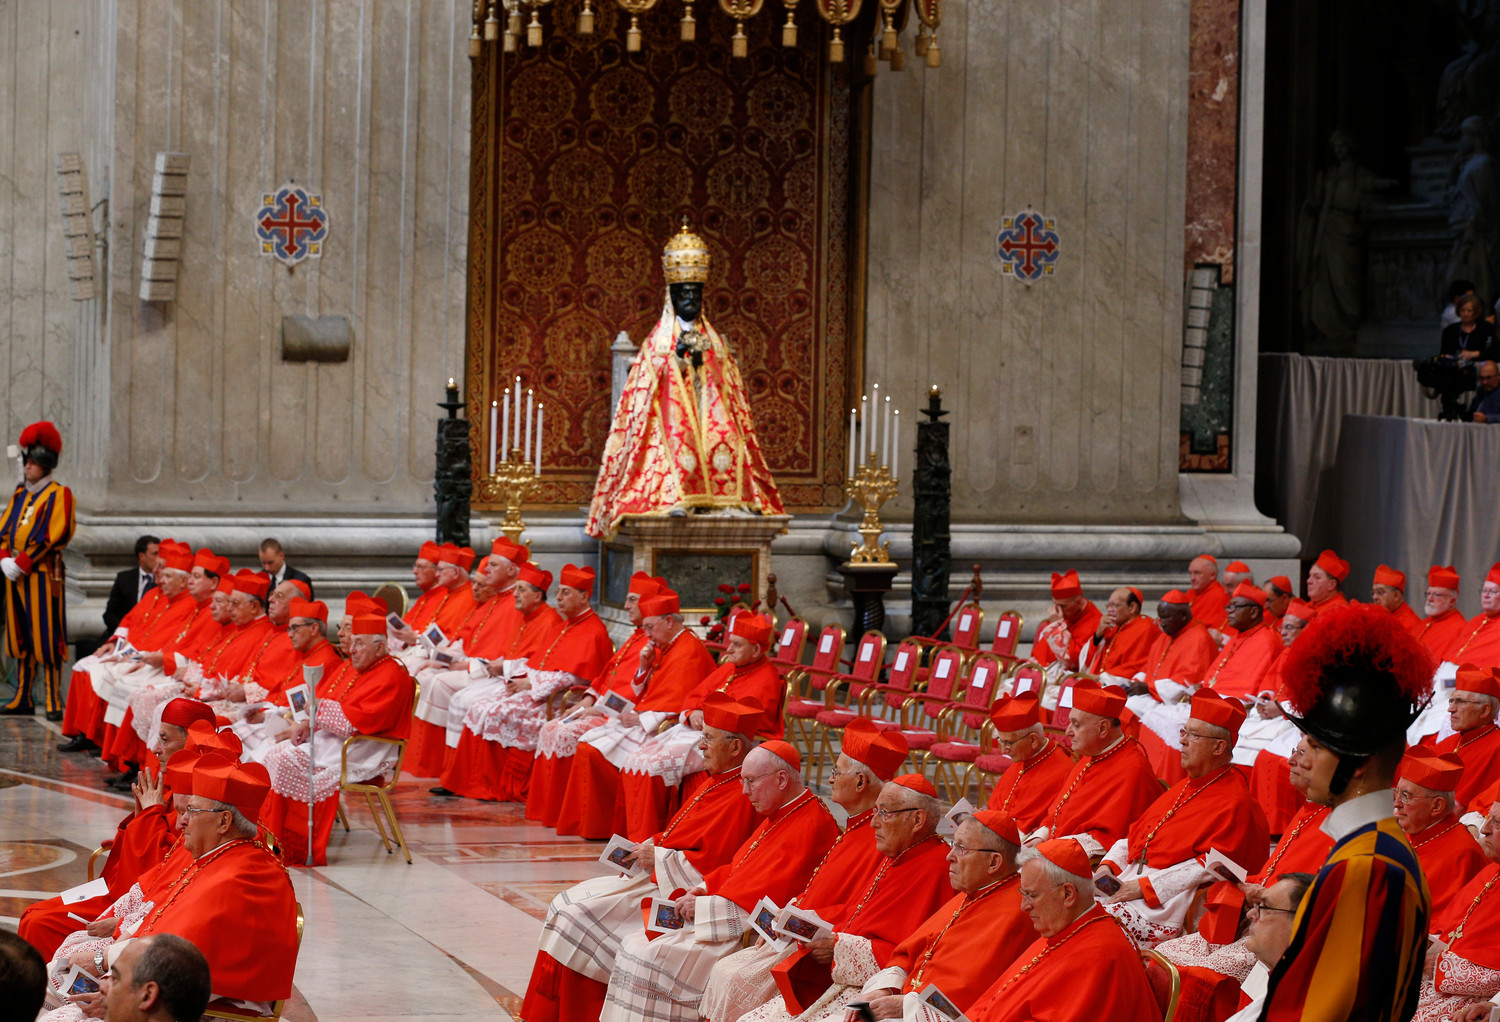 Pope Francis leads a consistory to create 14 new cardinals in St. Peter's Basilica at the Vatican June 28.